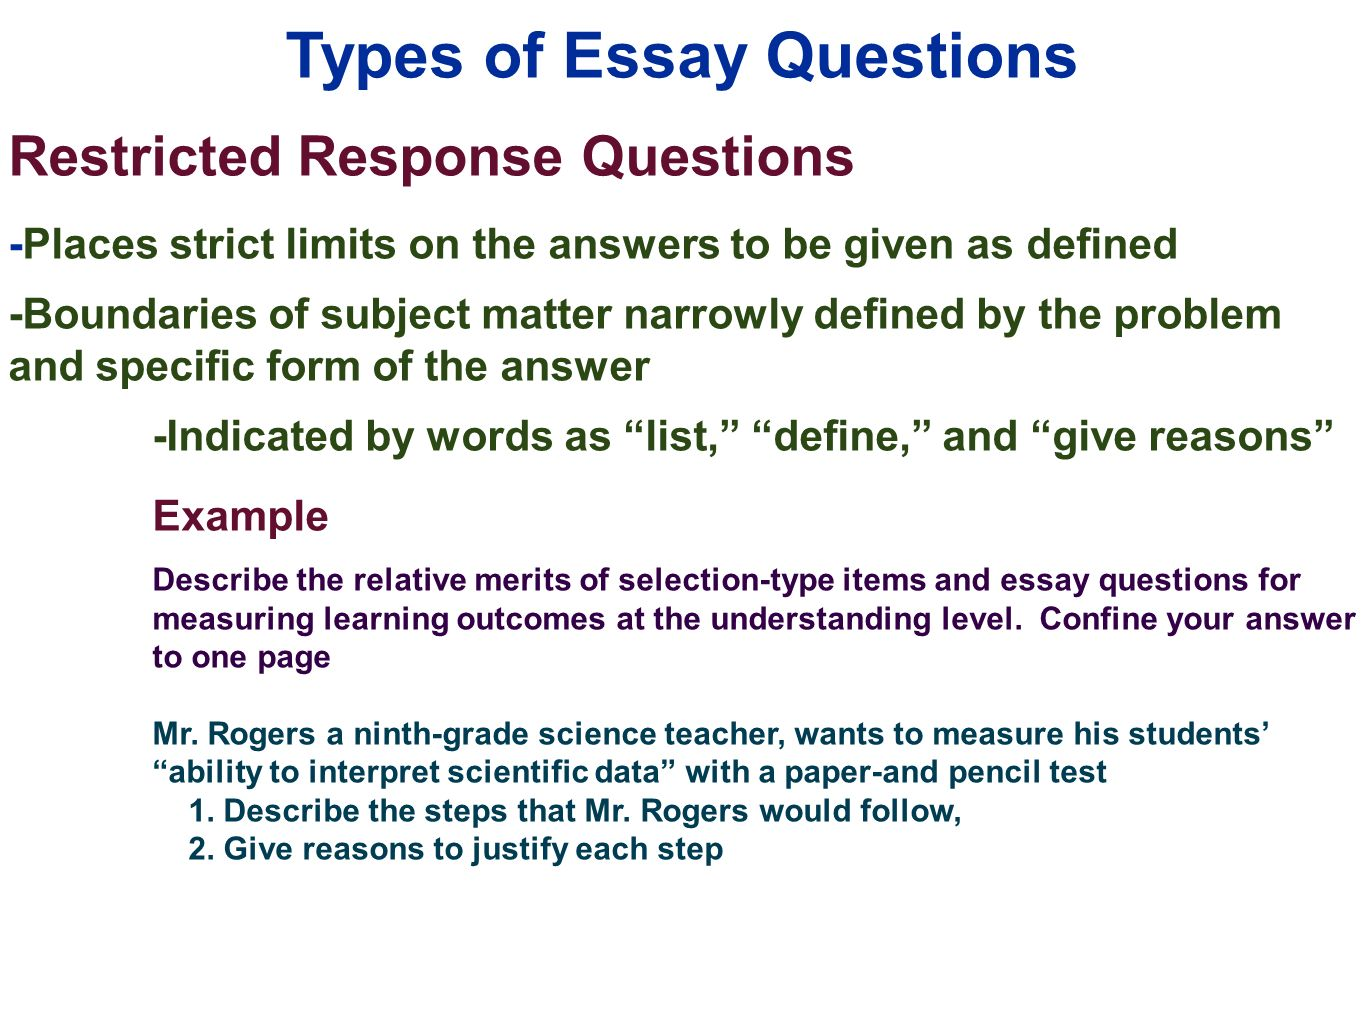 constructing essay test A discussion of factors to consider when constructing test questions advice for constructing test questions which help with student placement,diagnosis of difficulties, checking student progress, reporting, and evaluation of instruction true/false, multiple choice, fill-in-the-blank, and sometimes-always-never question types.